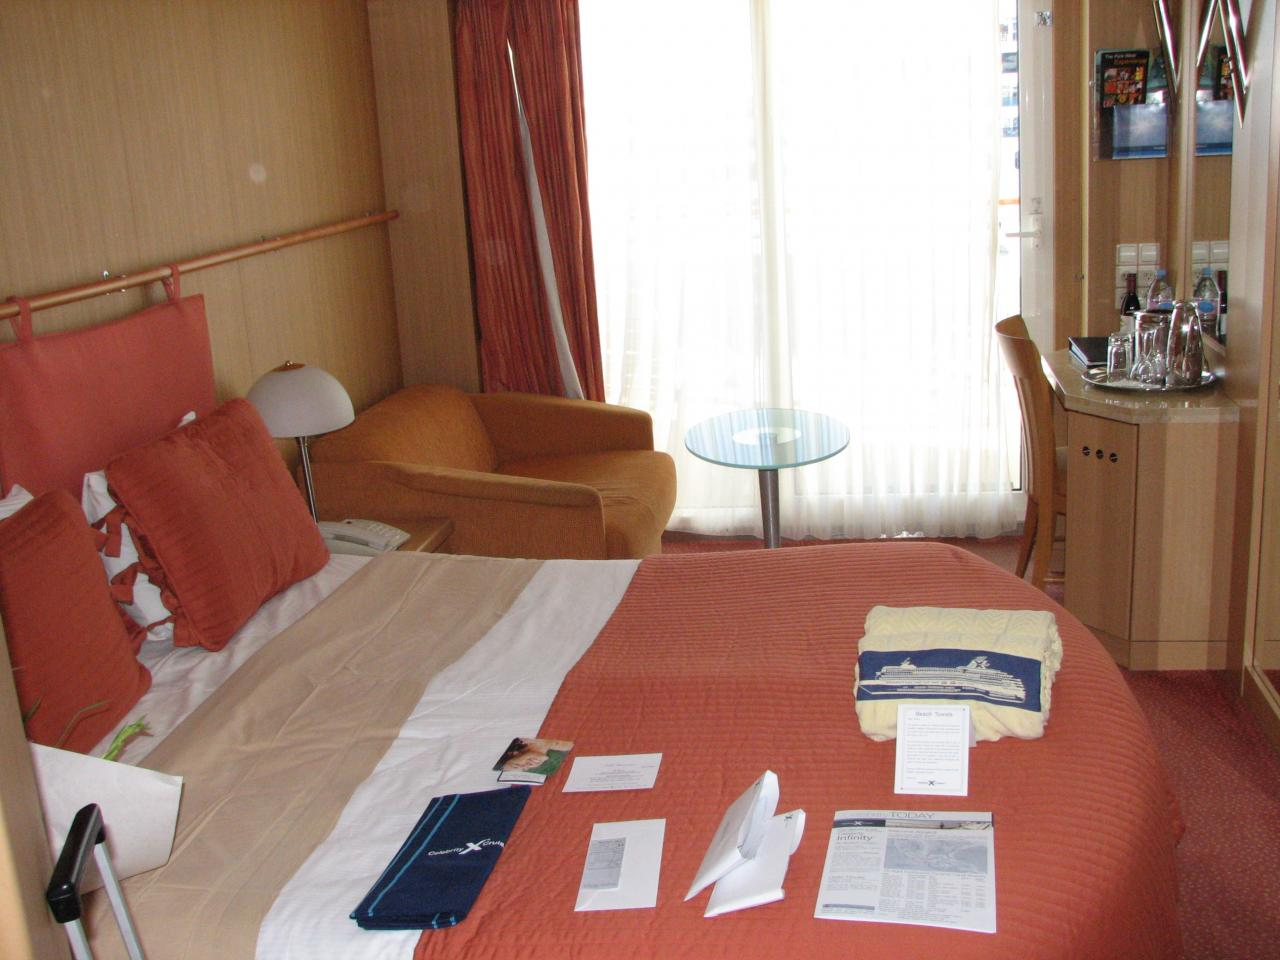 Celebrity infinity shore excursions reviews